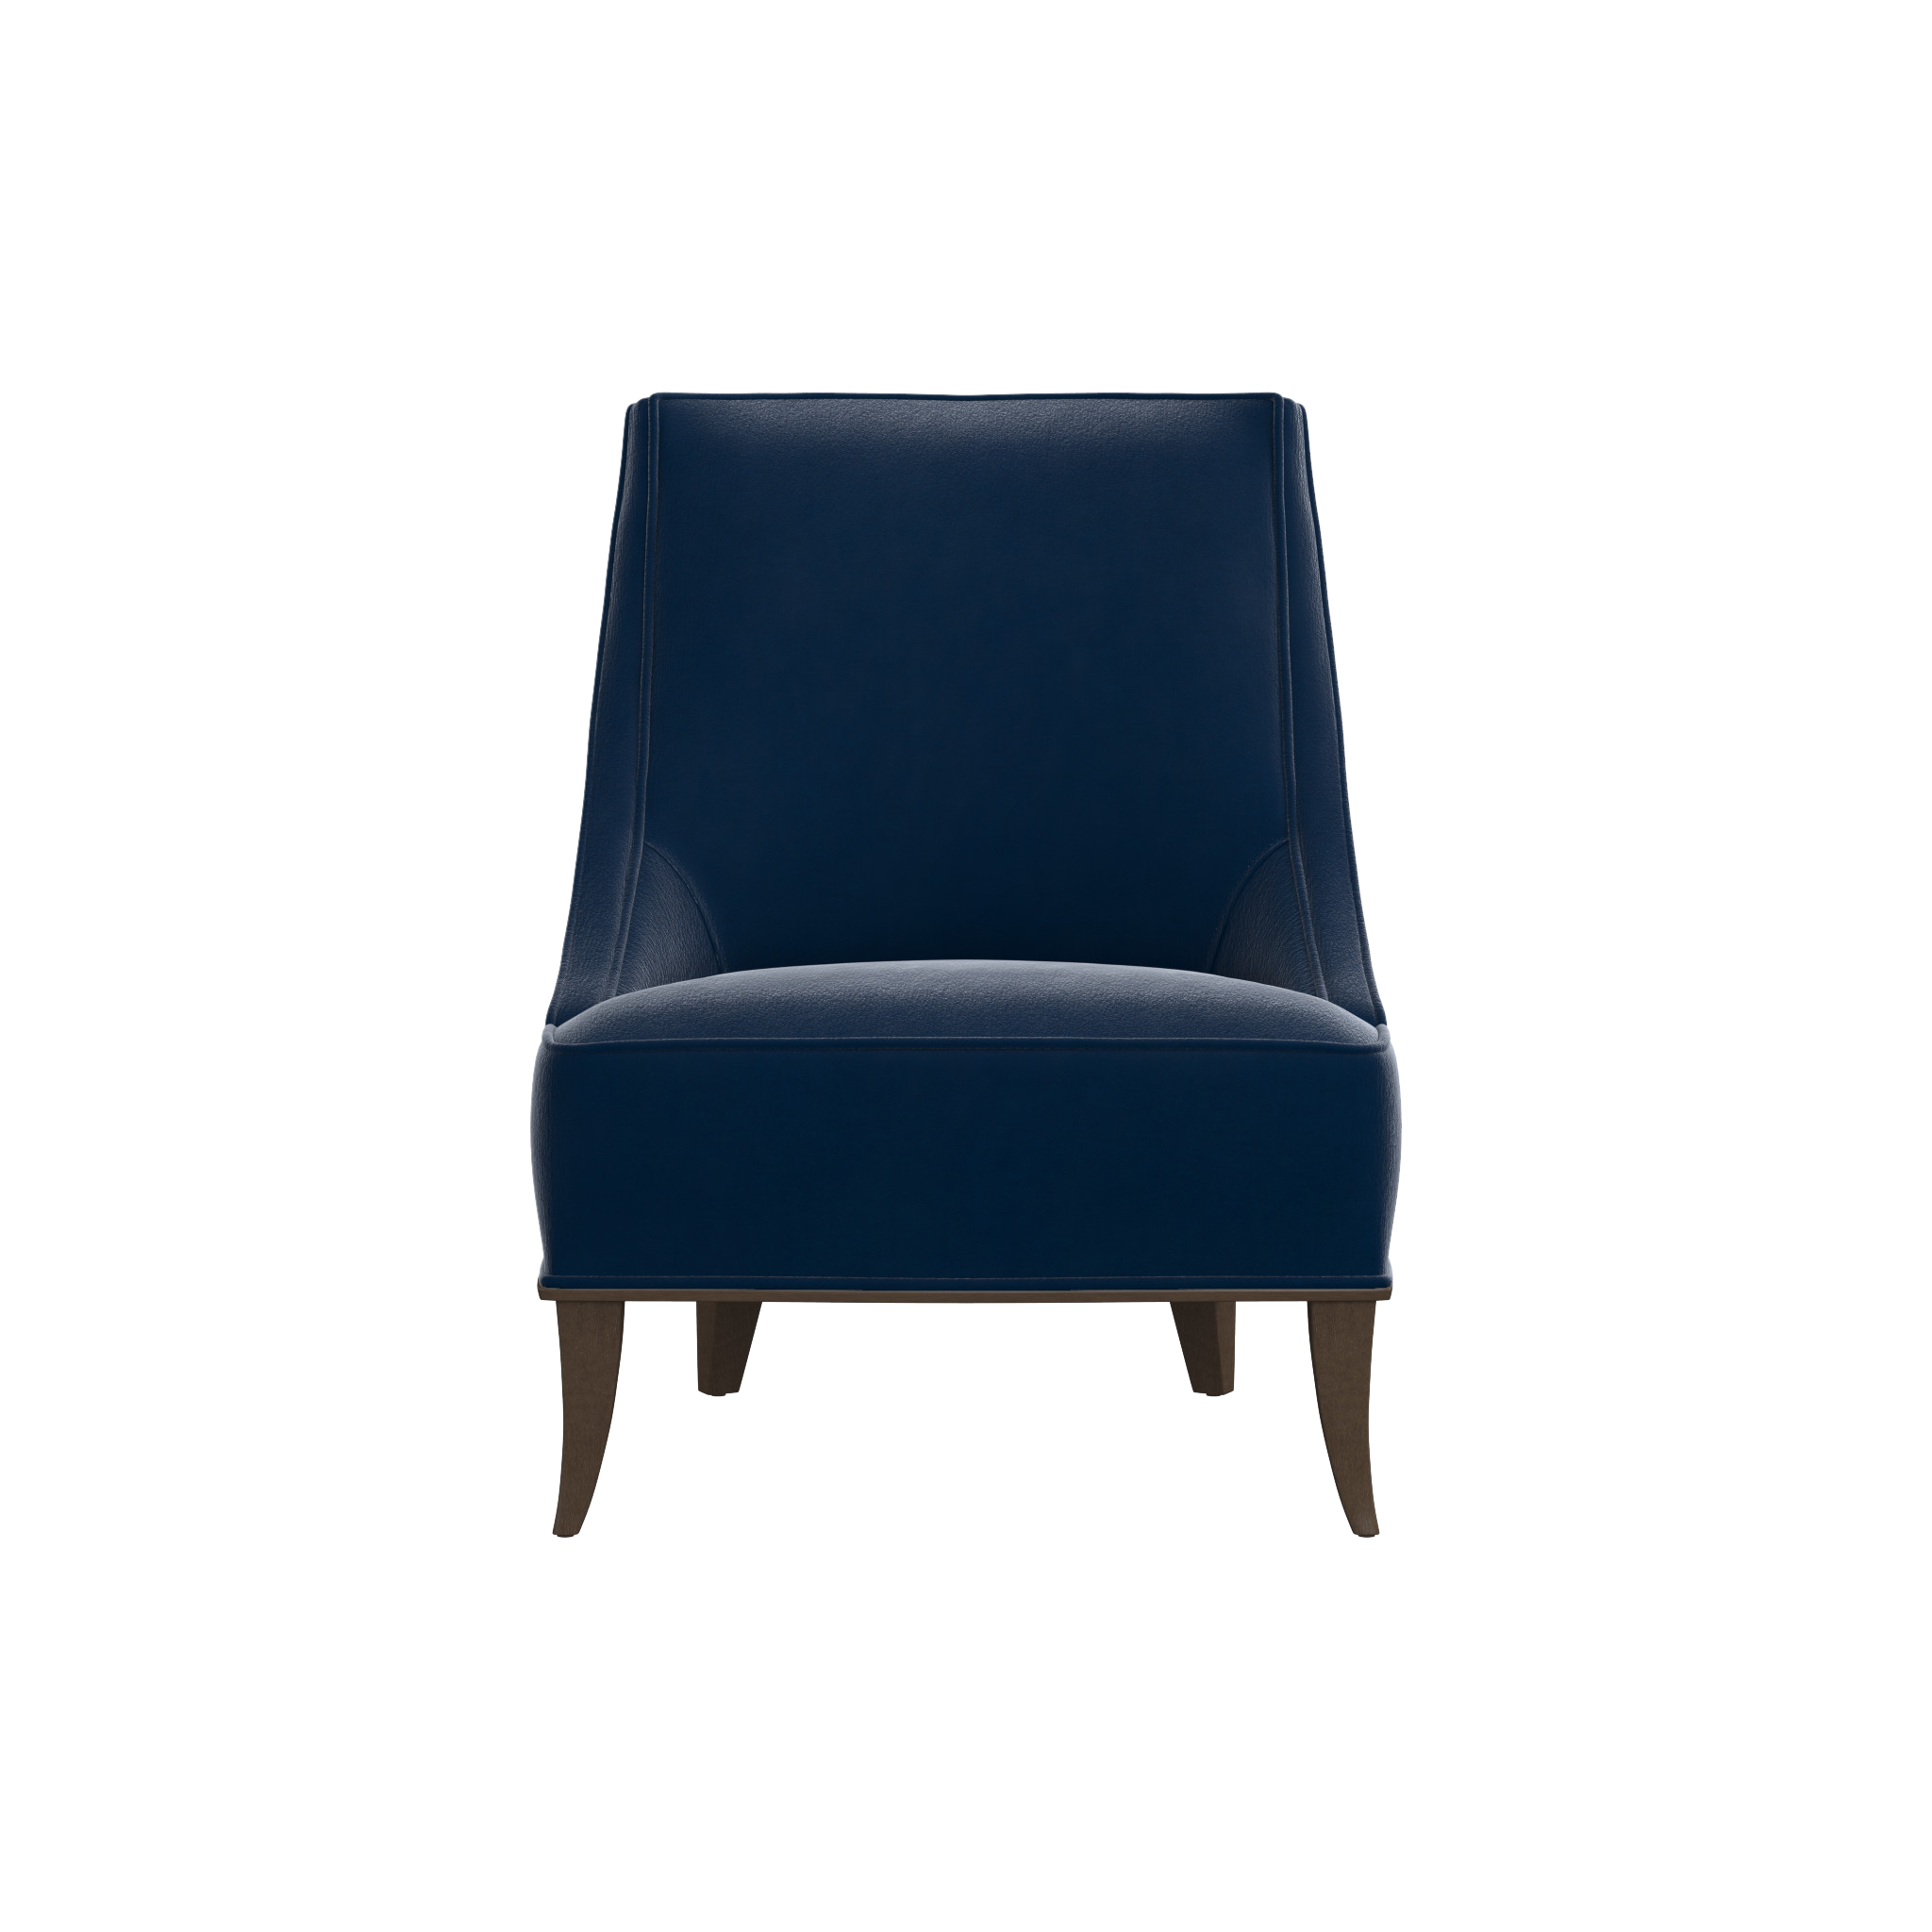 pink at hairs chairs tufted accent armless best new bdwooddesign decor com decorating diy projects home navy sale landscape slipper teal minimalist blue wingback ideas armchair chair design c upholstered hair